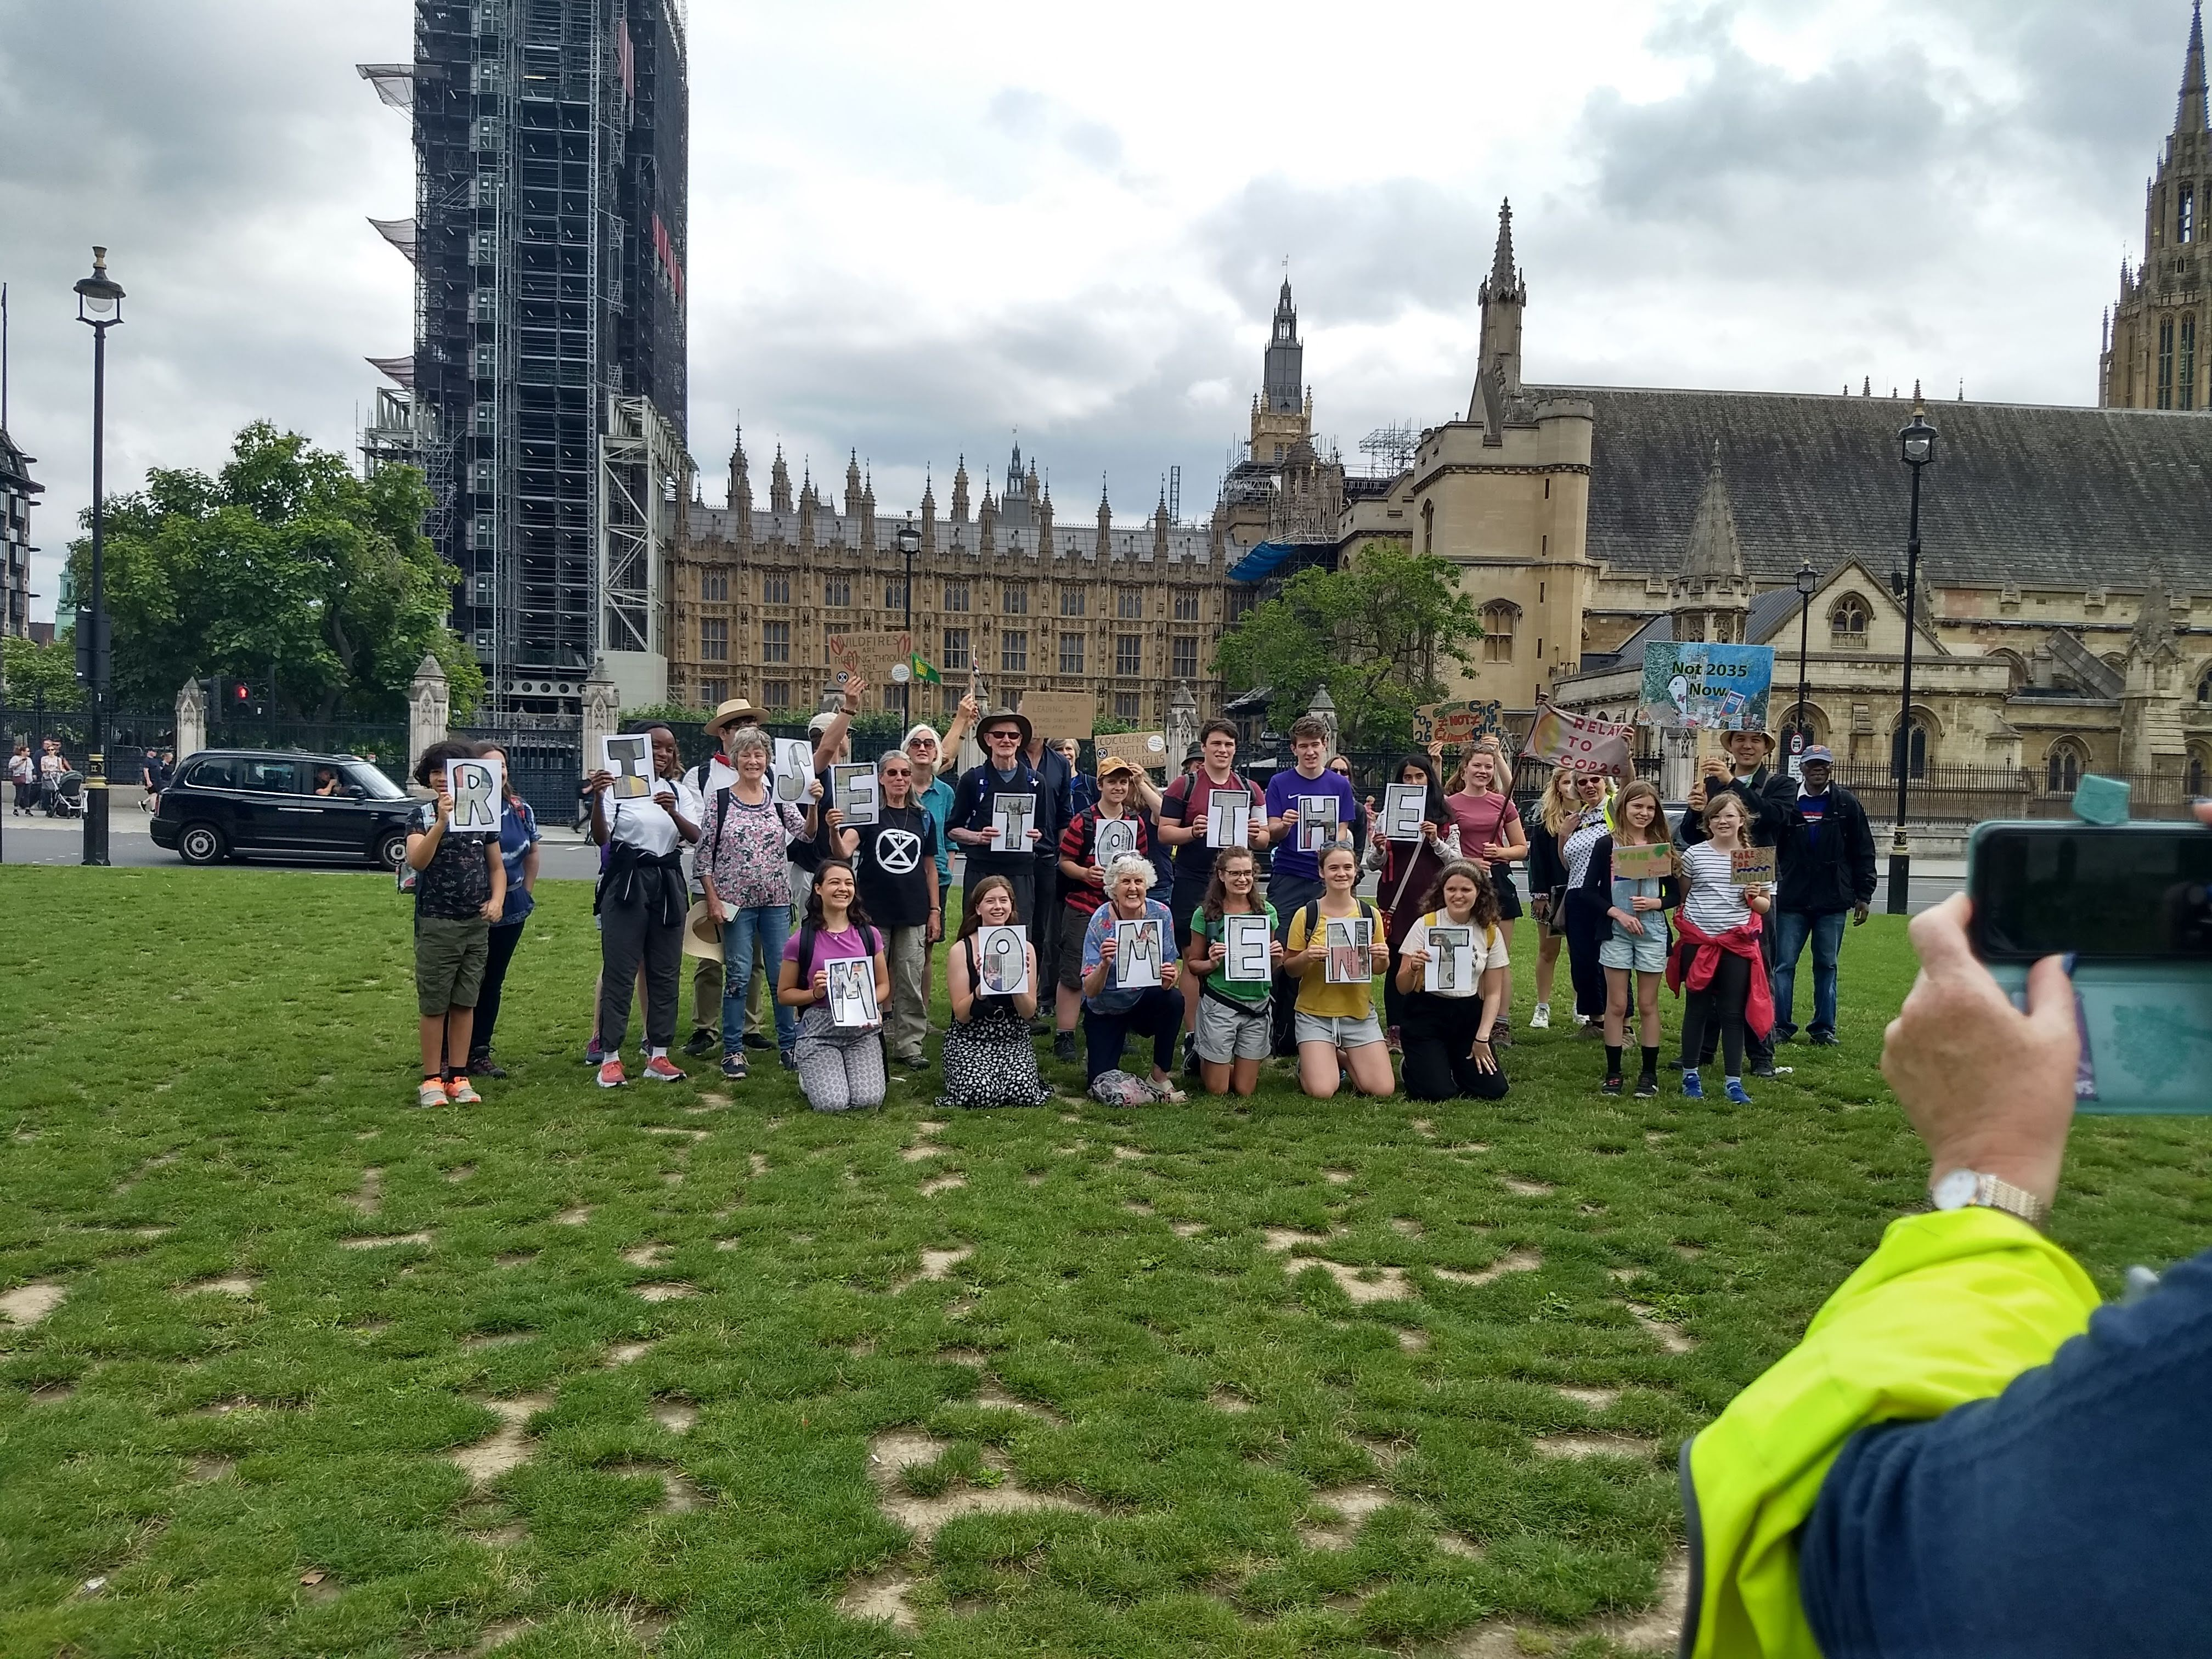 YCCN climate walkers outside the Houses of Parliament